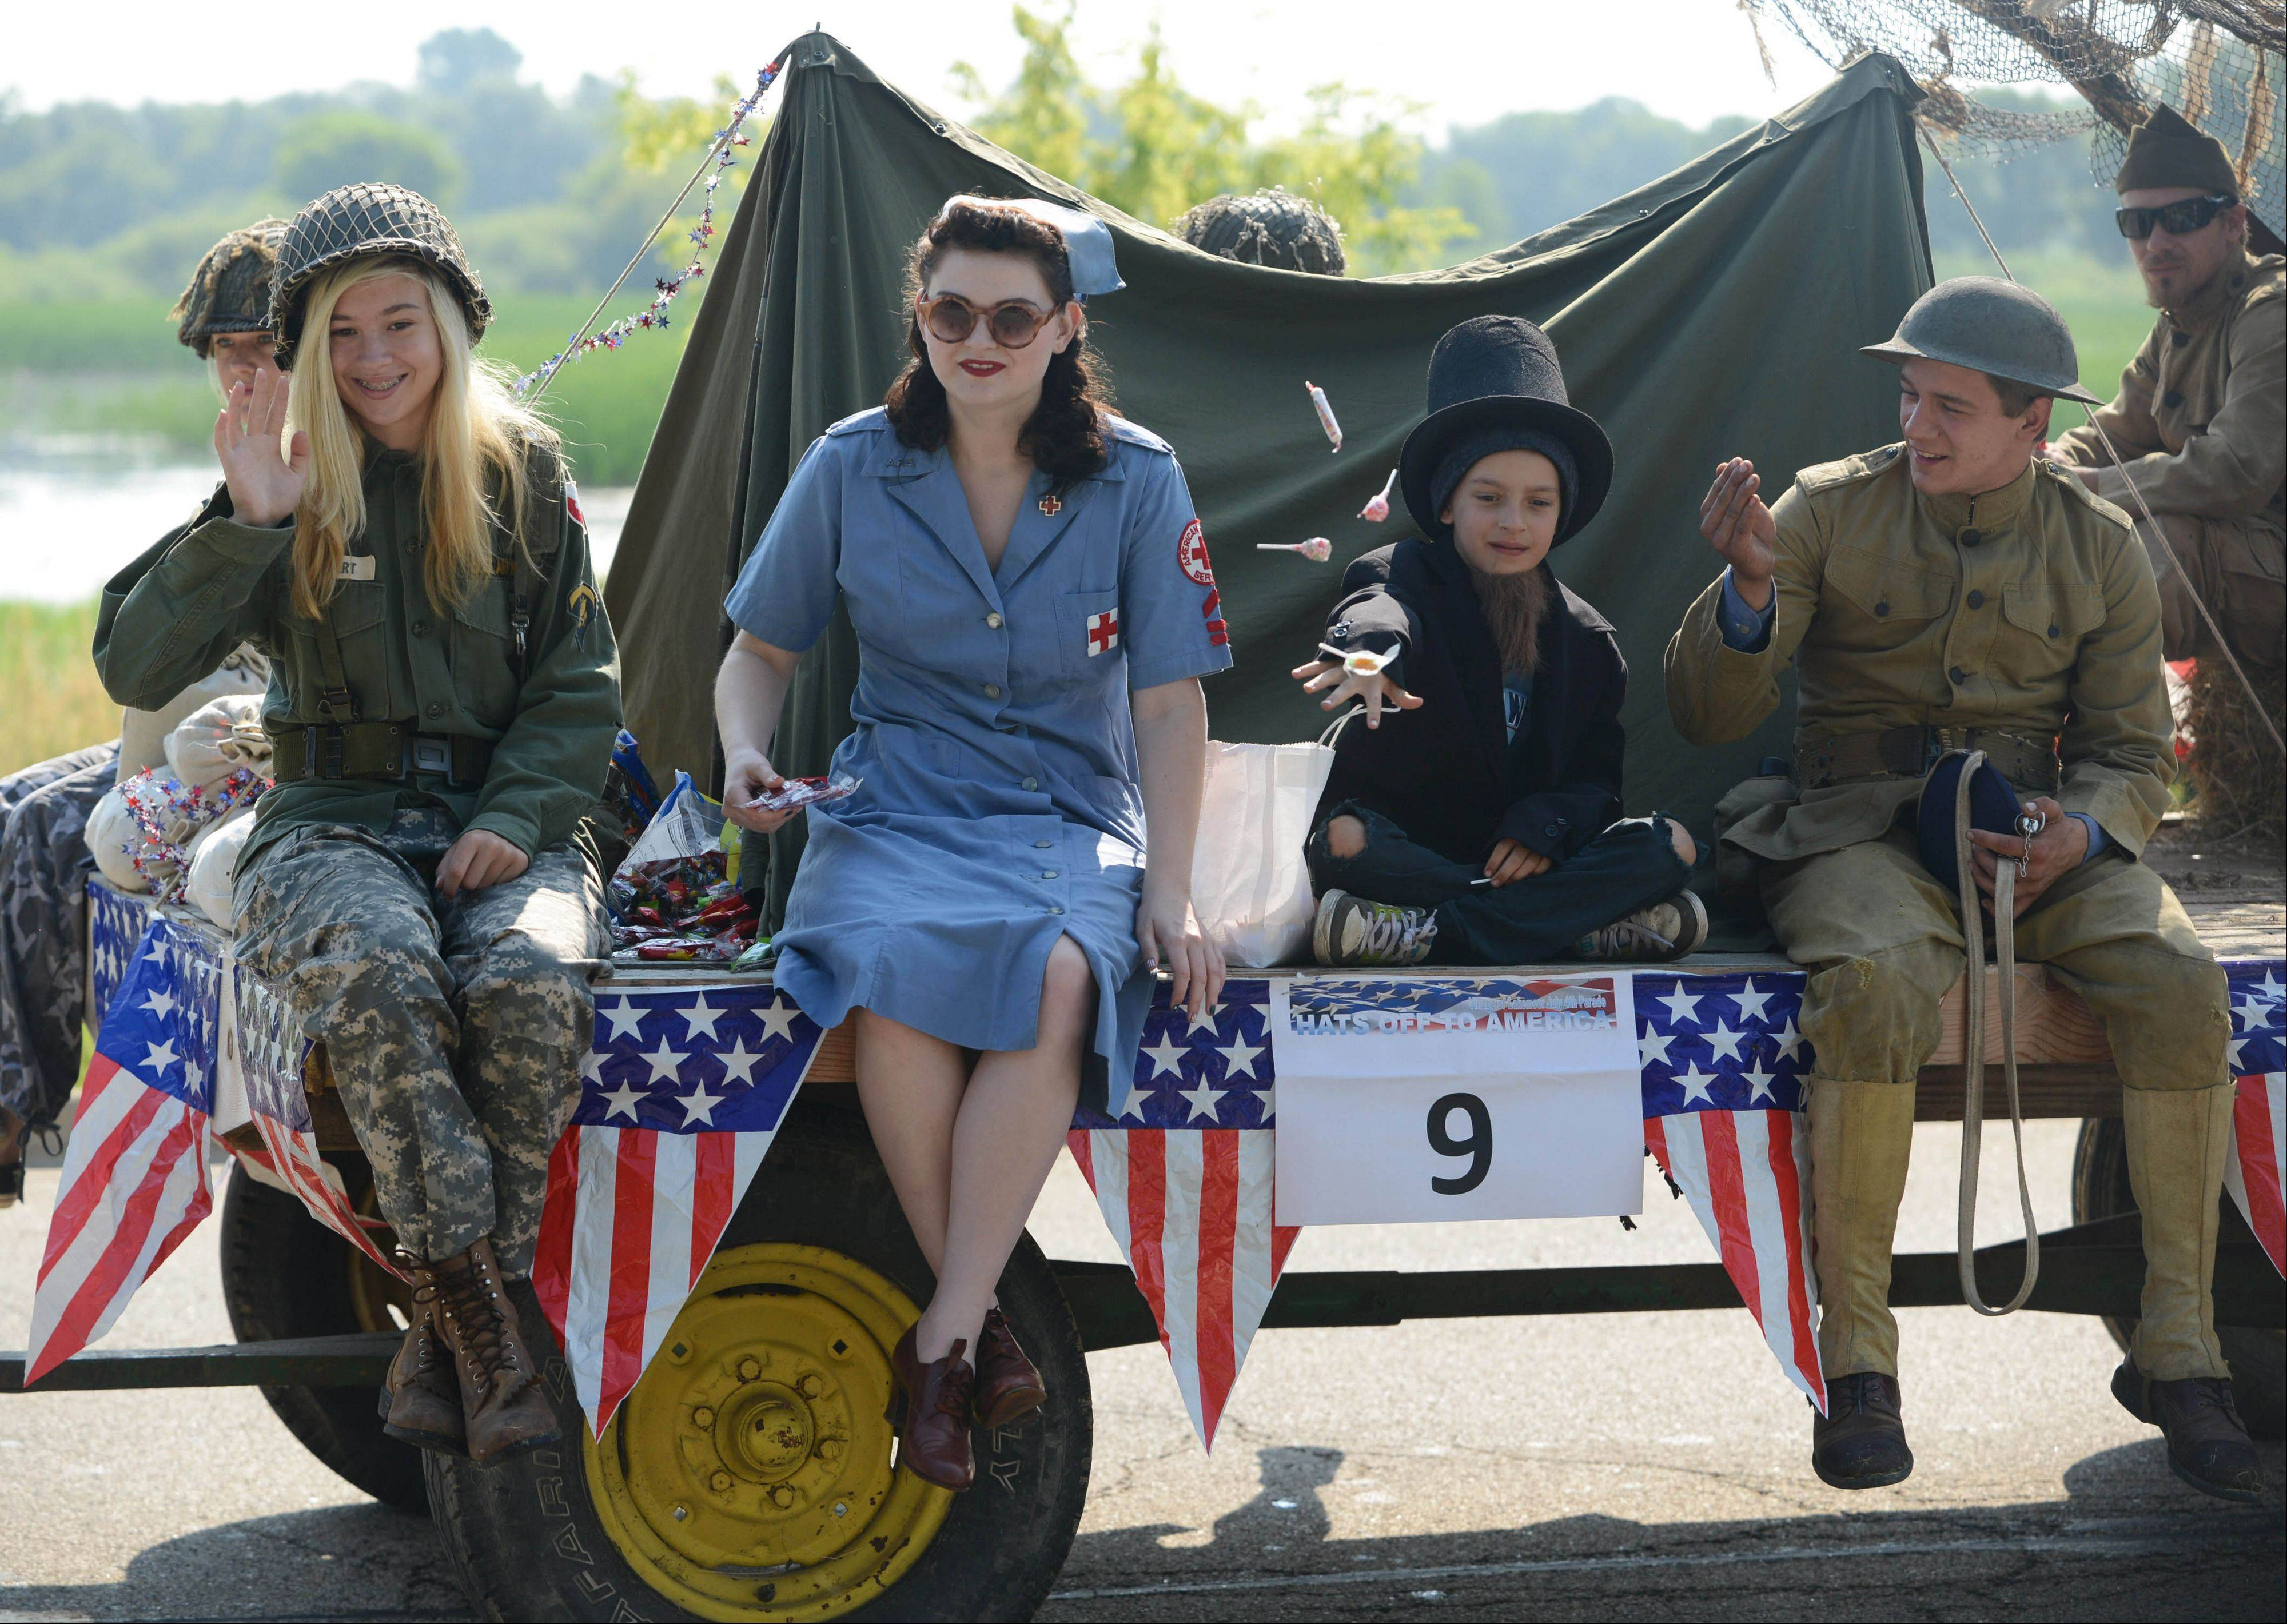 Arei Bein, from left, Julia Fisher, Payton Johnson and Sam Johnson throw candy from the Johnson family's military themed float during Thursday's Fourth of July parade in Lakemoor.